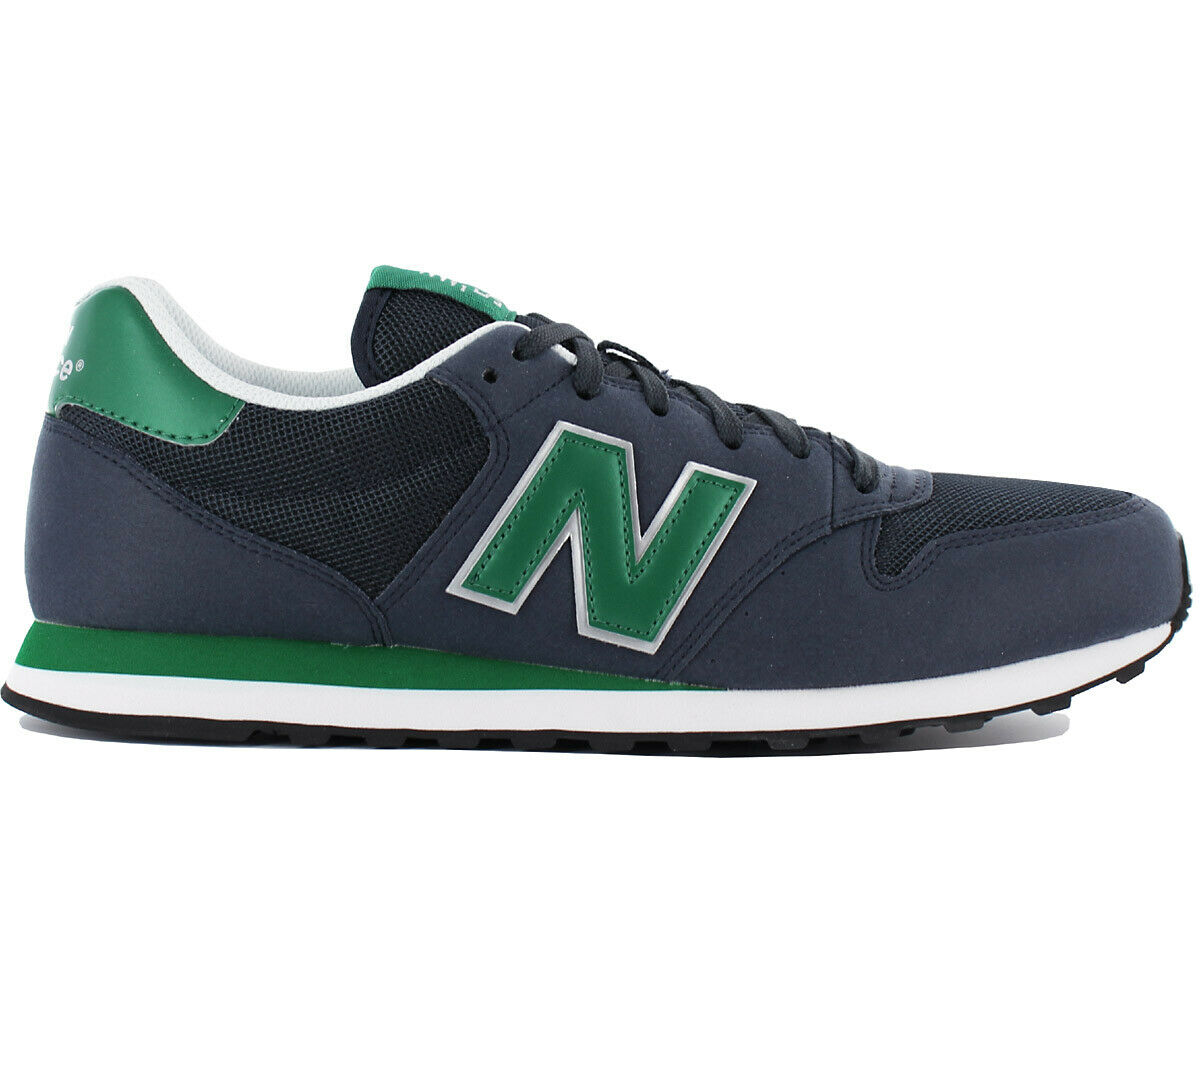 NEW Balance Classics 500 Mens Trainers shoes Navy bluee GM500NSG Sneakers NEW